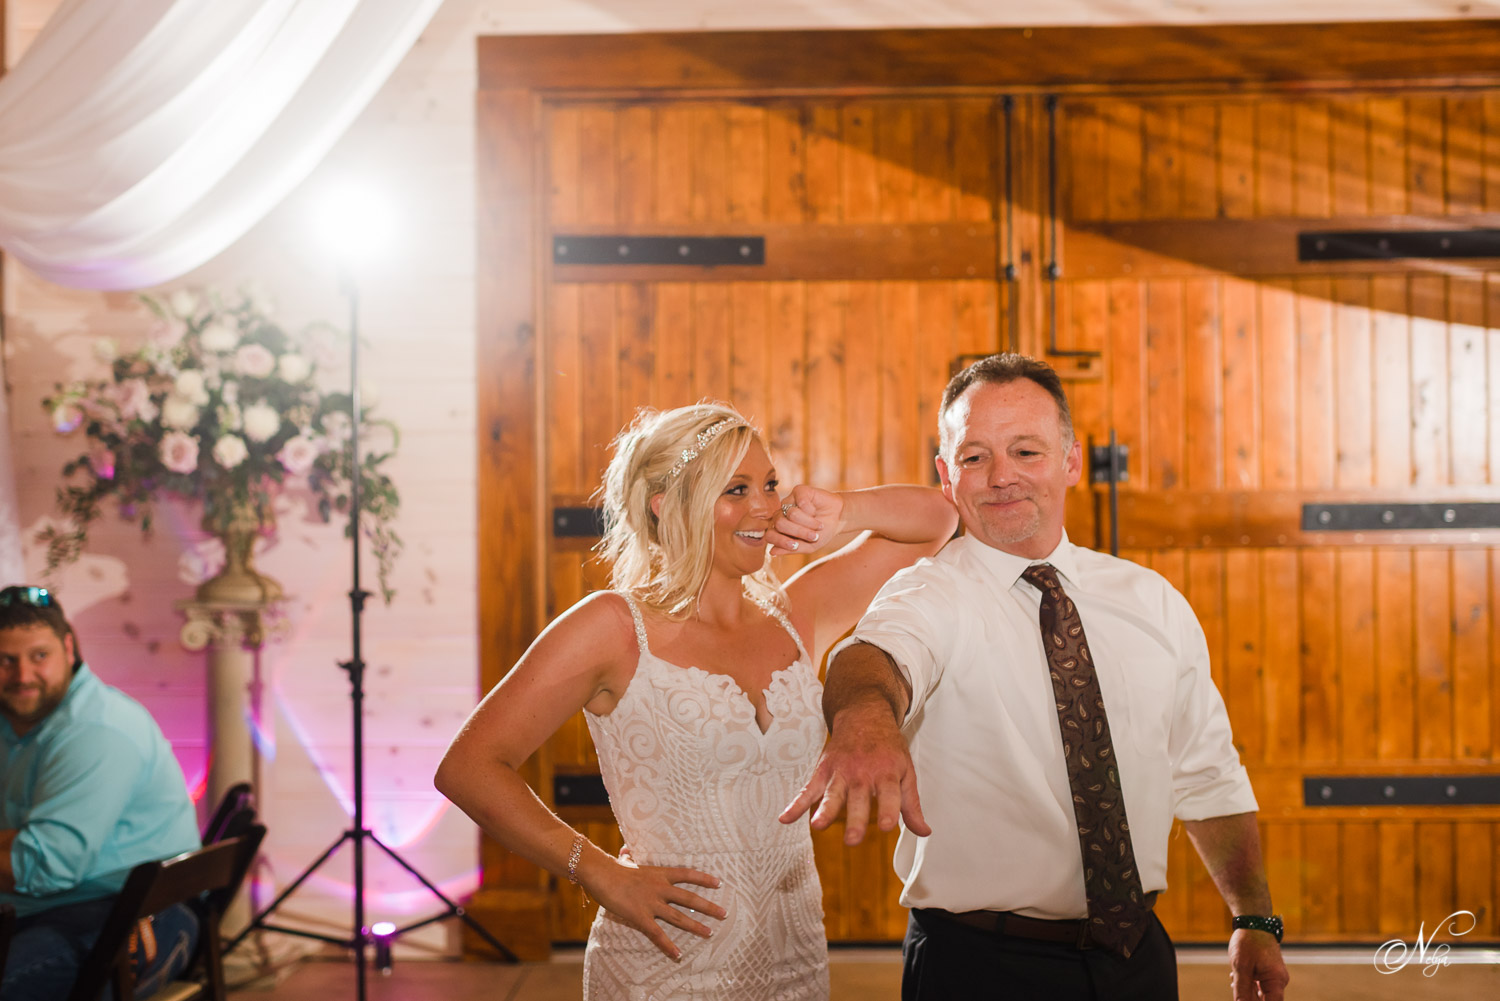 bride with her arm on her dad's shoulder as they finish their custom choreographed dance